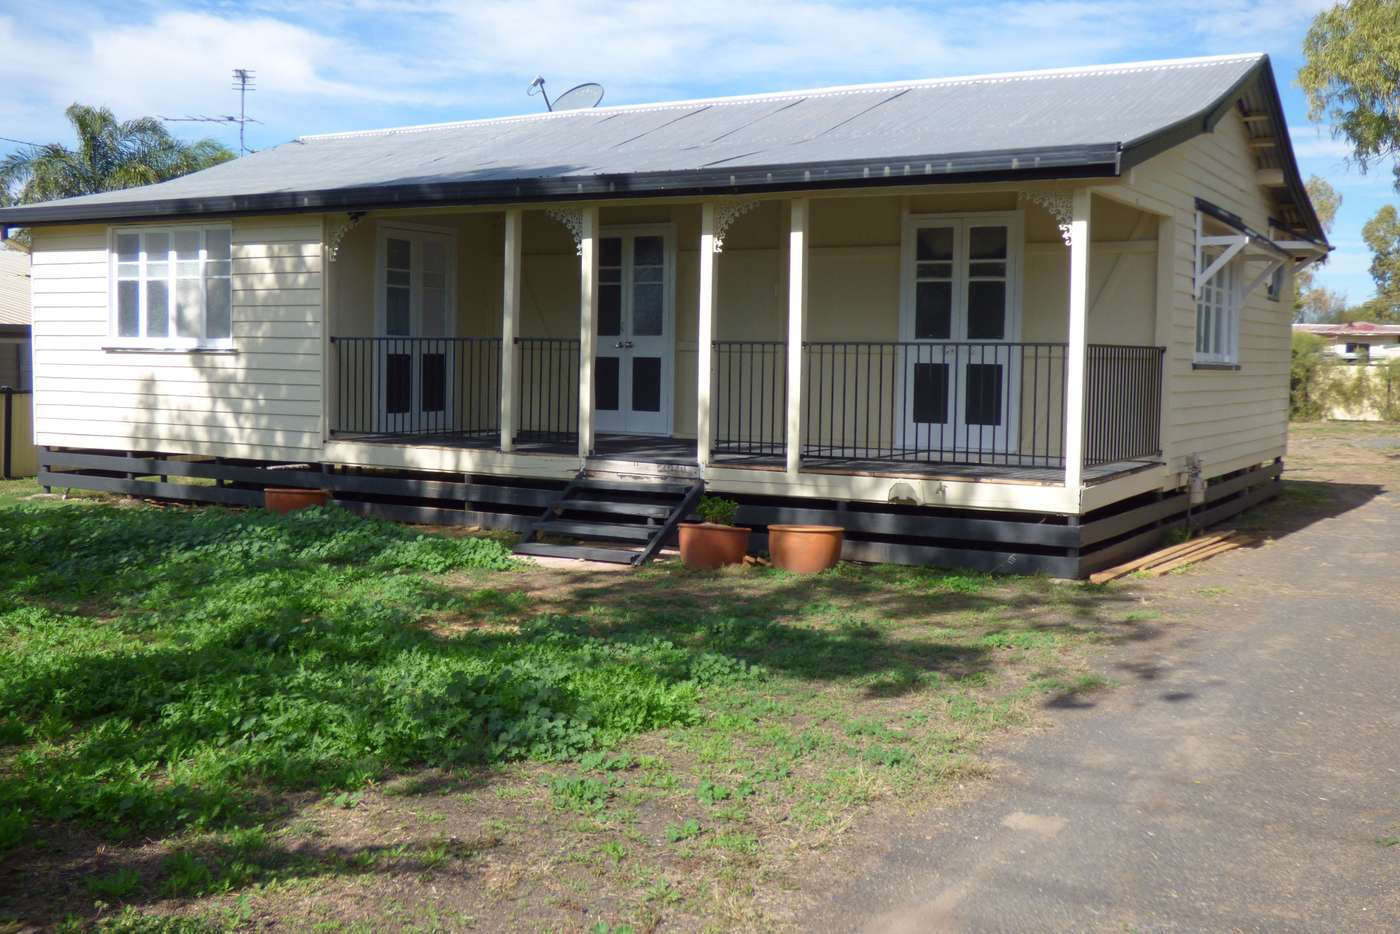 Main view of Homely house listing, 78 Raglan Street, Roma QLD 4455